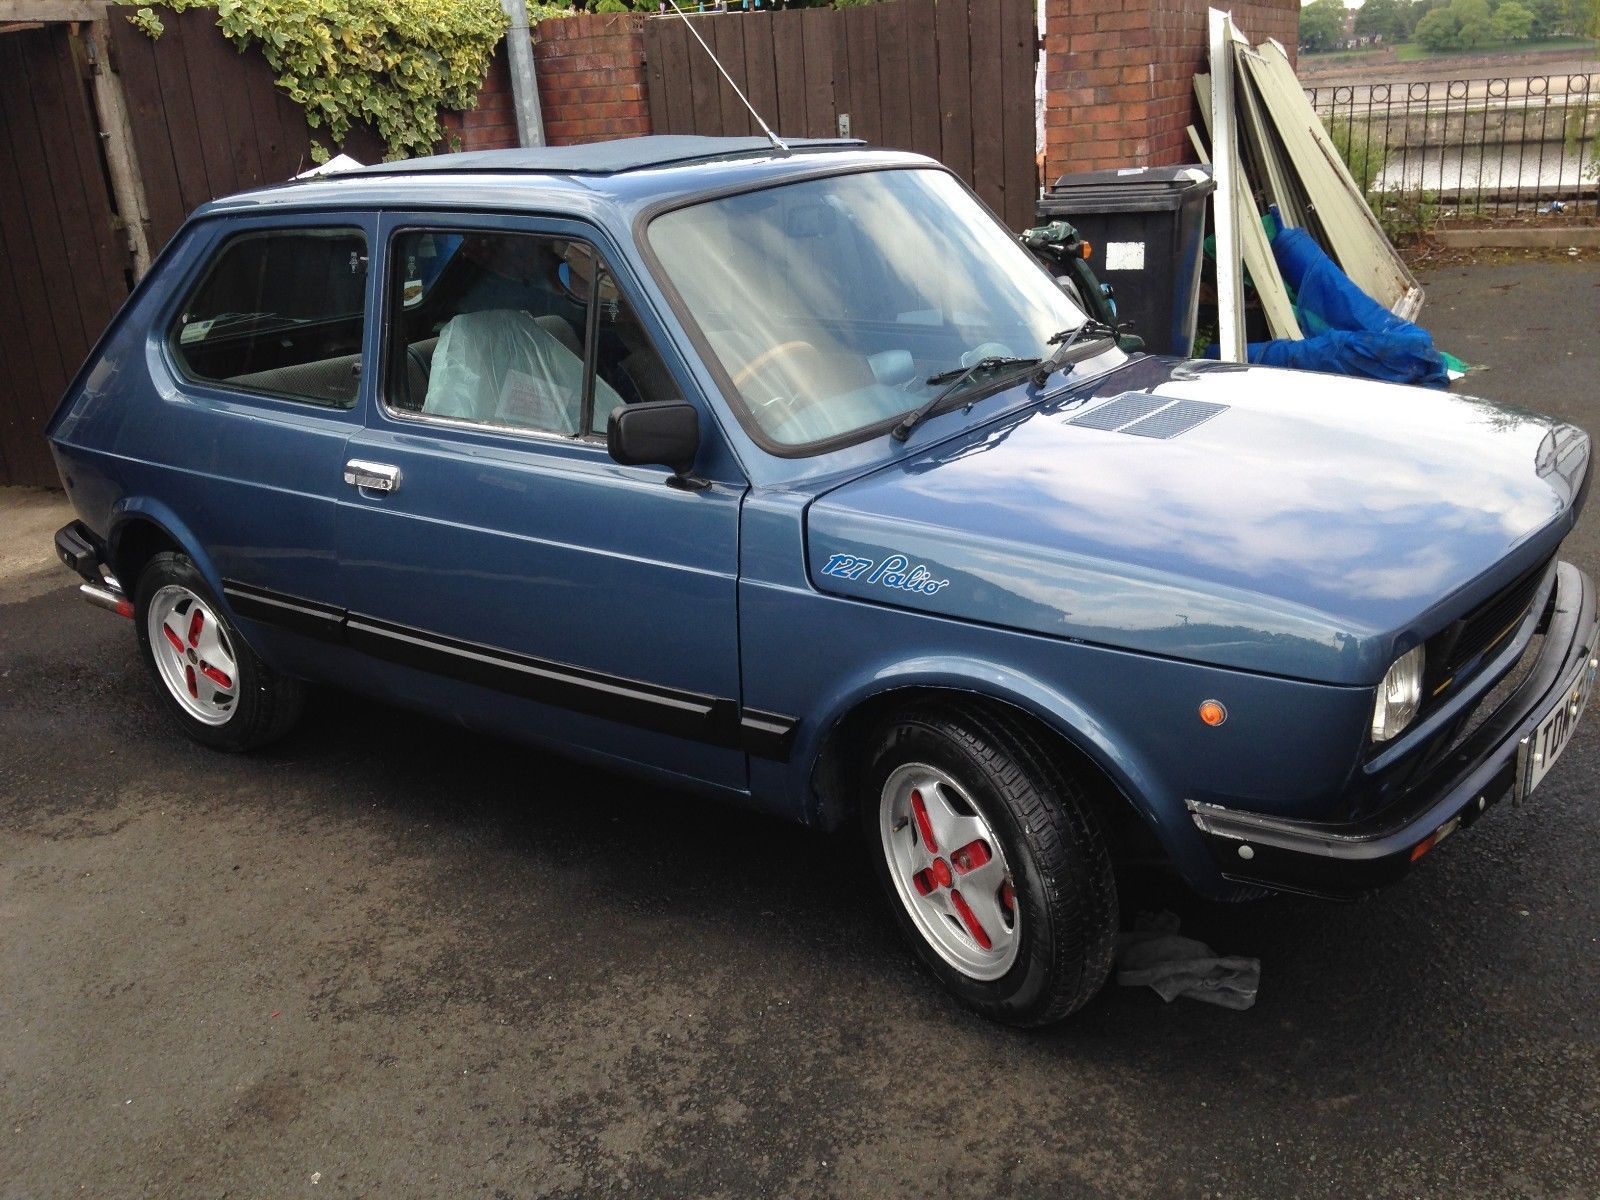 Ebay Fiat 127 Palio 1980 P X Why 1980s Cars With Images